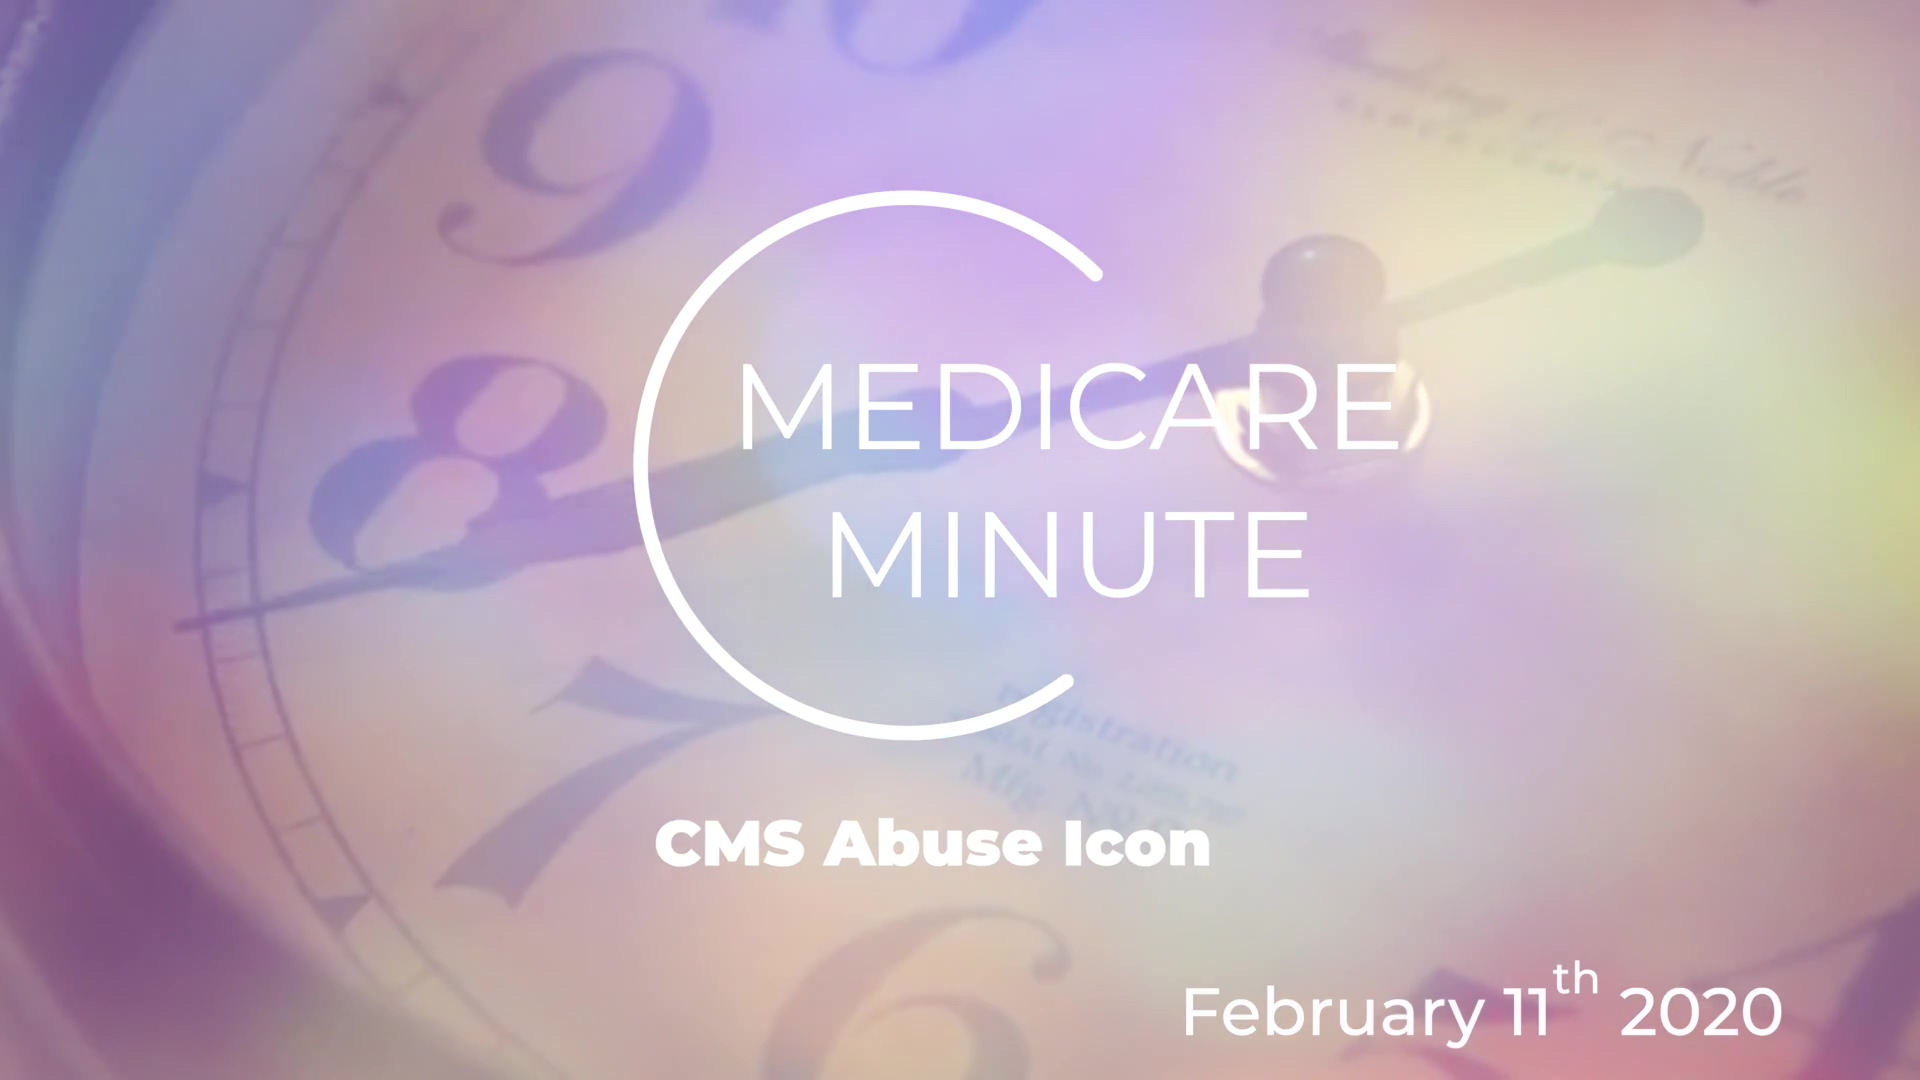 MM - CMS Abuse Icon